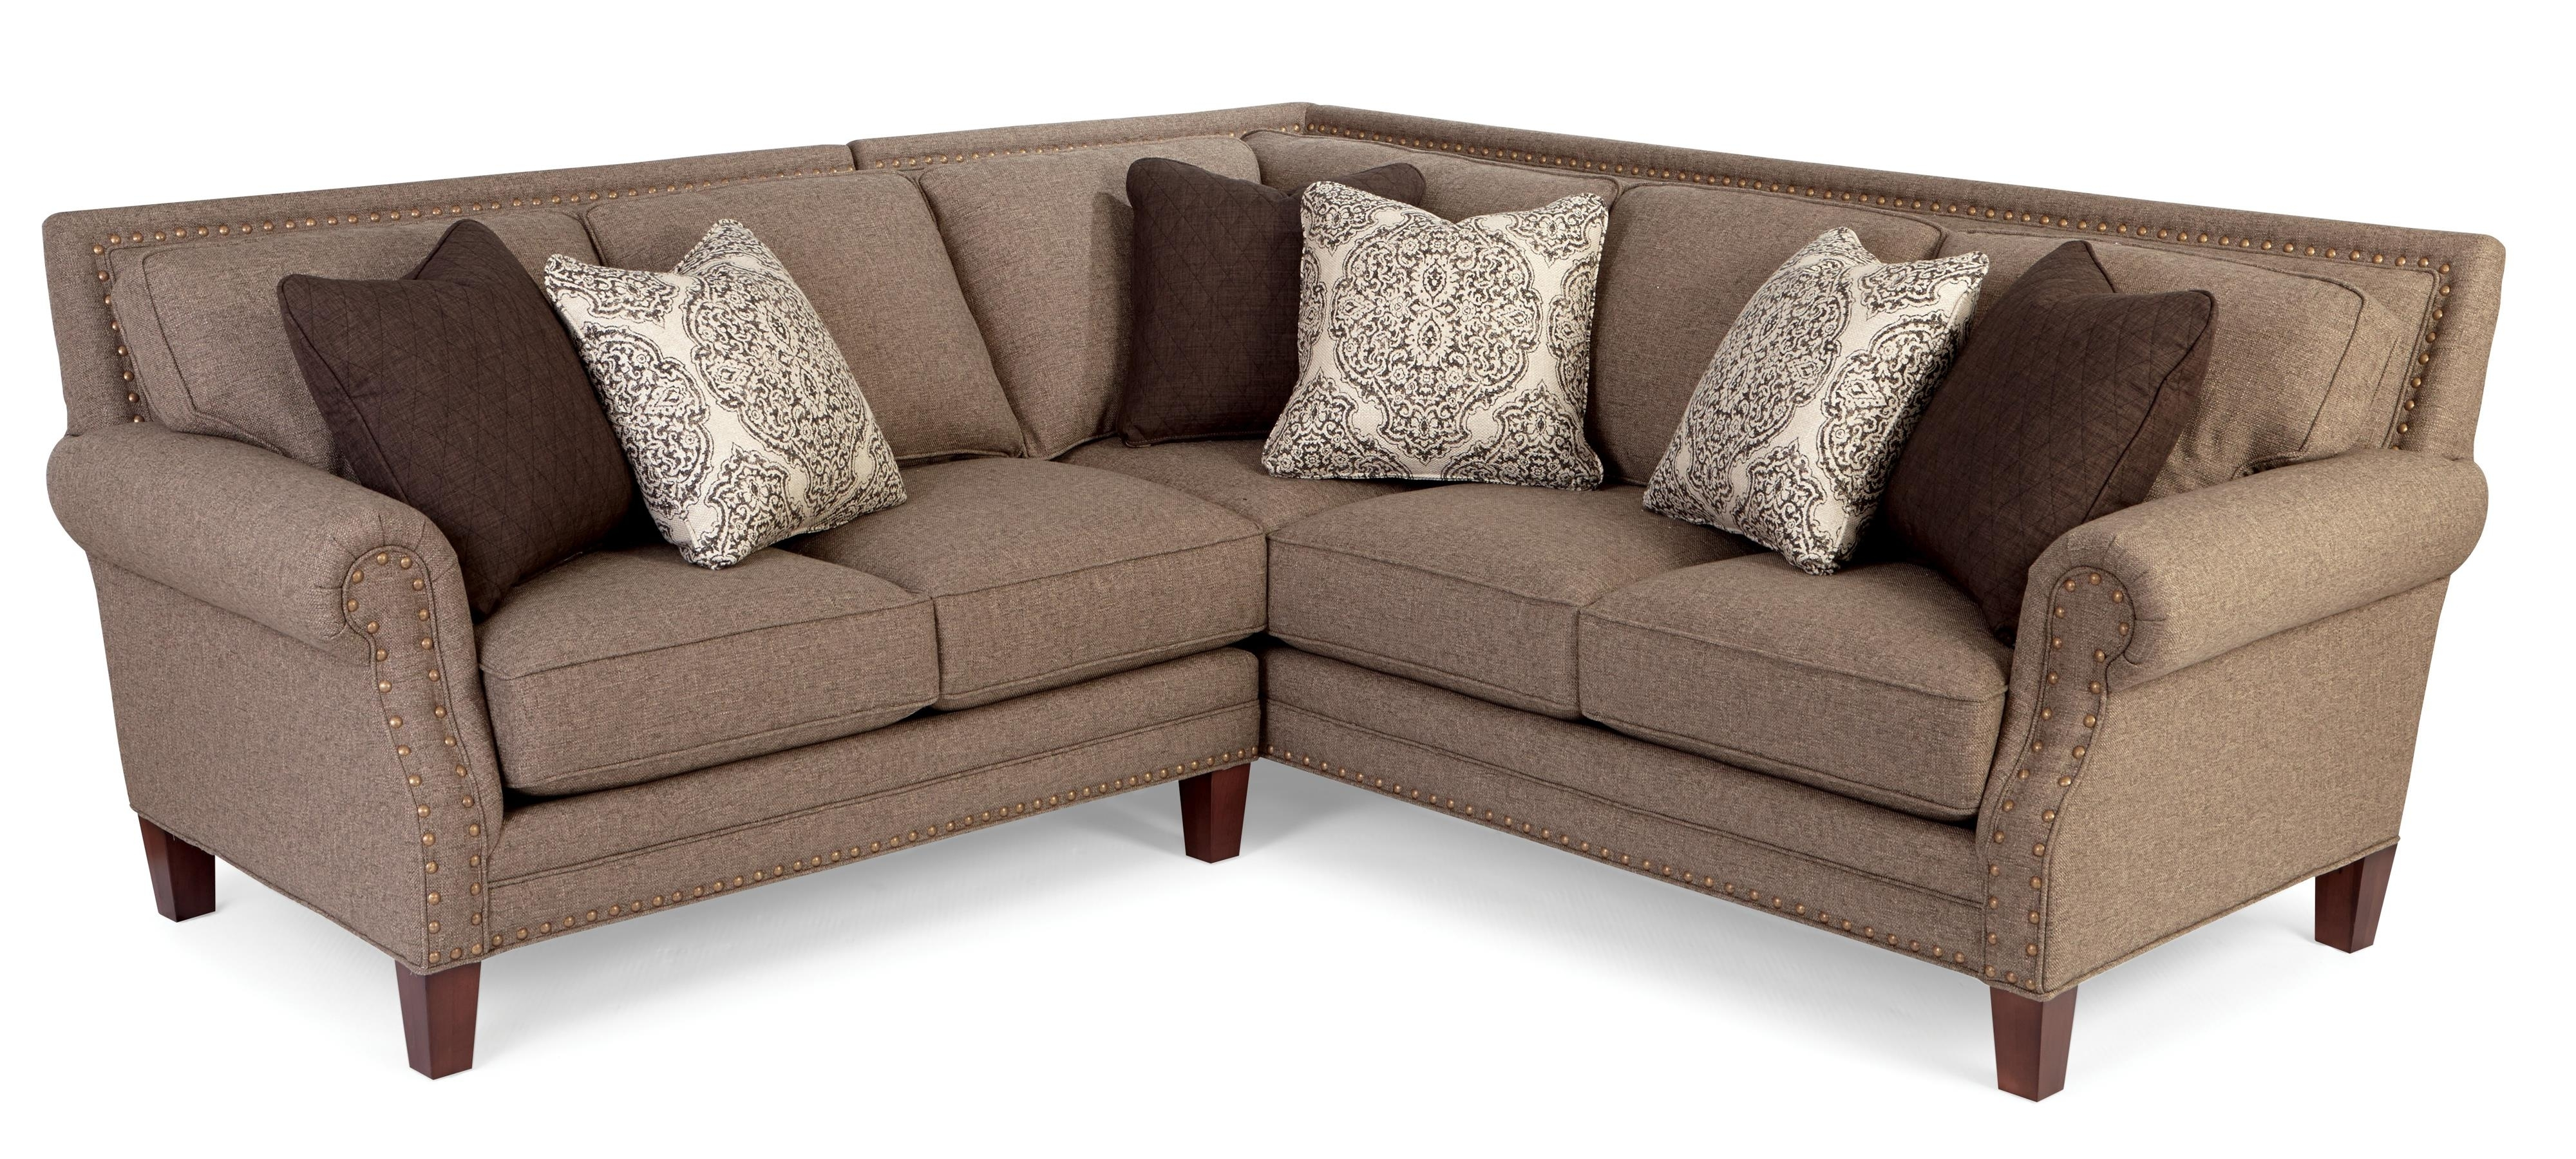 Two Piece Sectional Sofa With Rolled Arms And Light Brass Nailheads Intended For Sectional Sofas With Nailheads (Image 10 of 10)